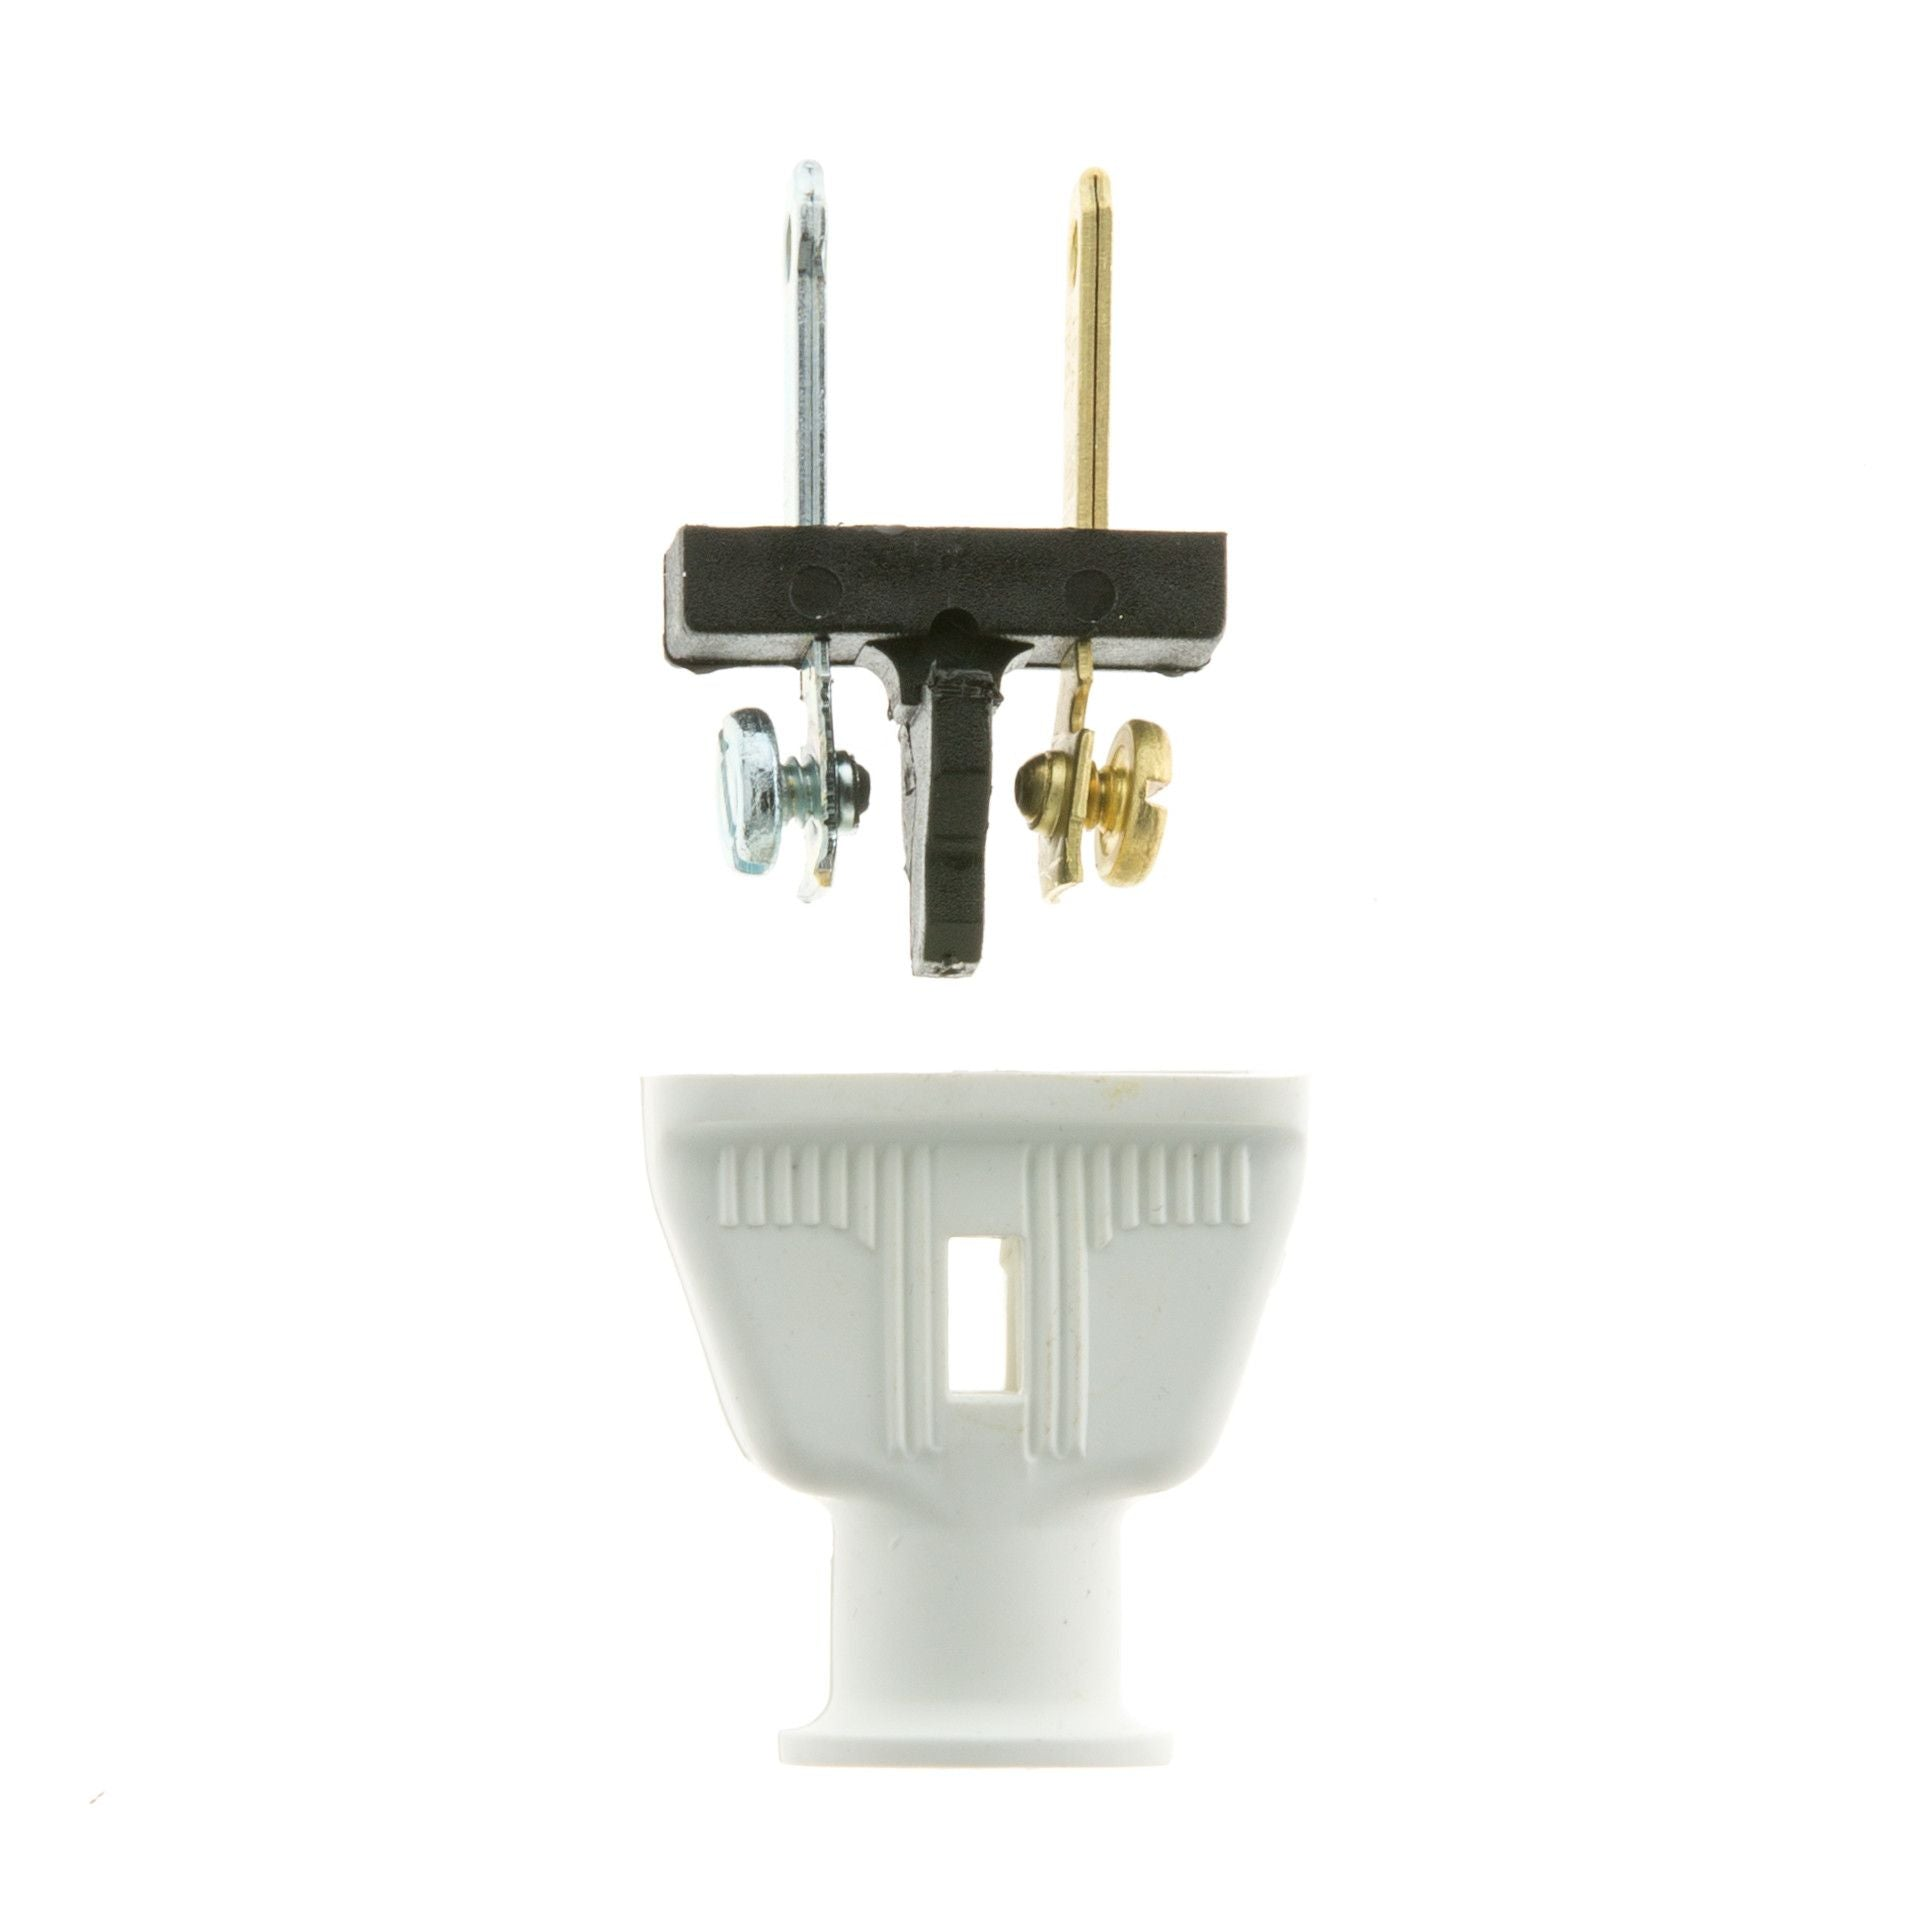 Rubber Plug End White Color Cord Company Wiring A Components